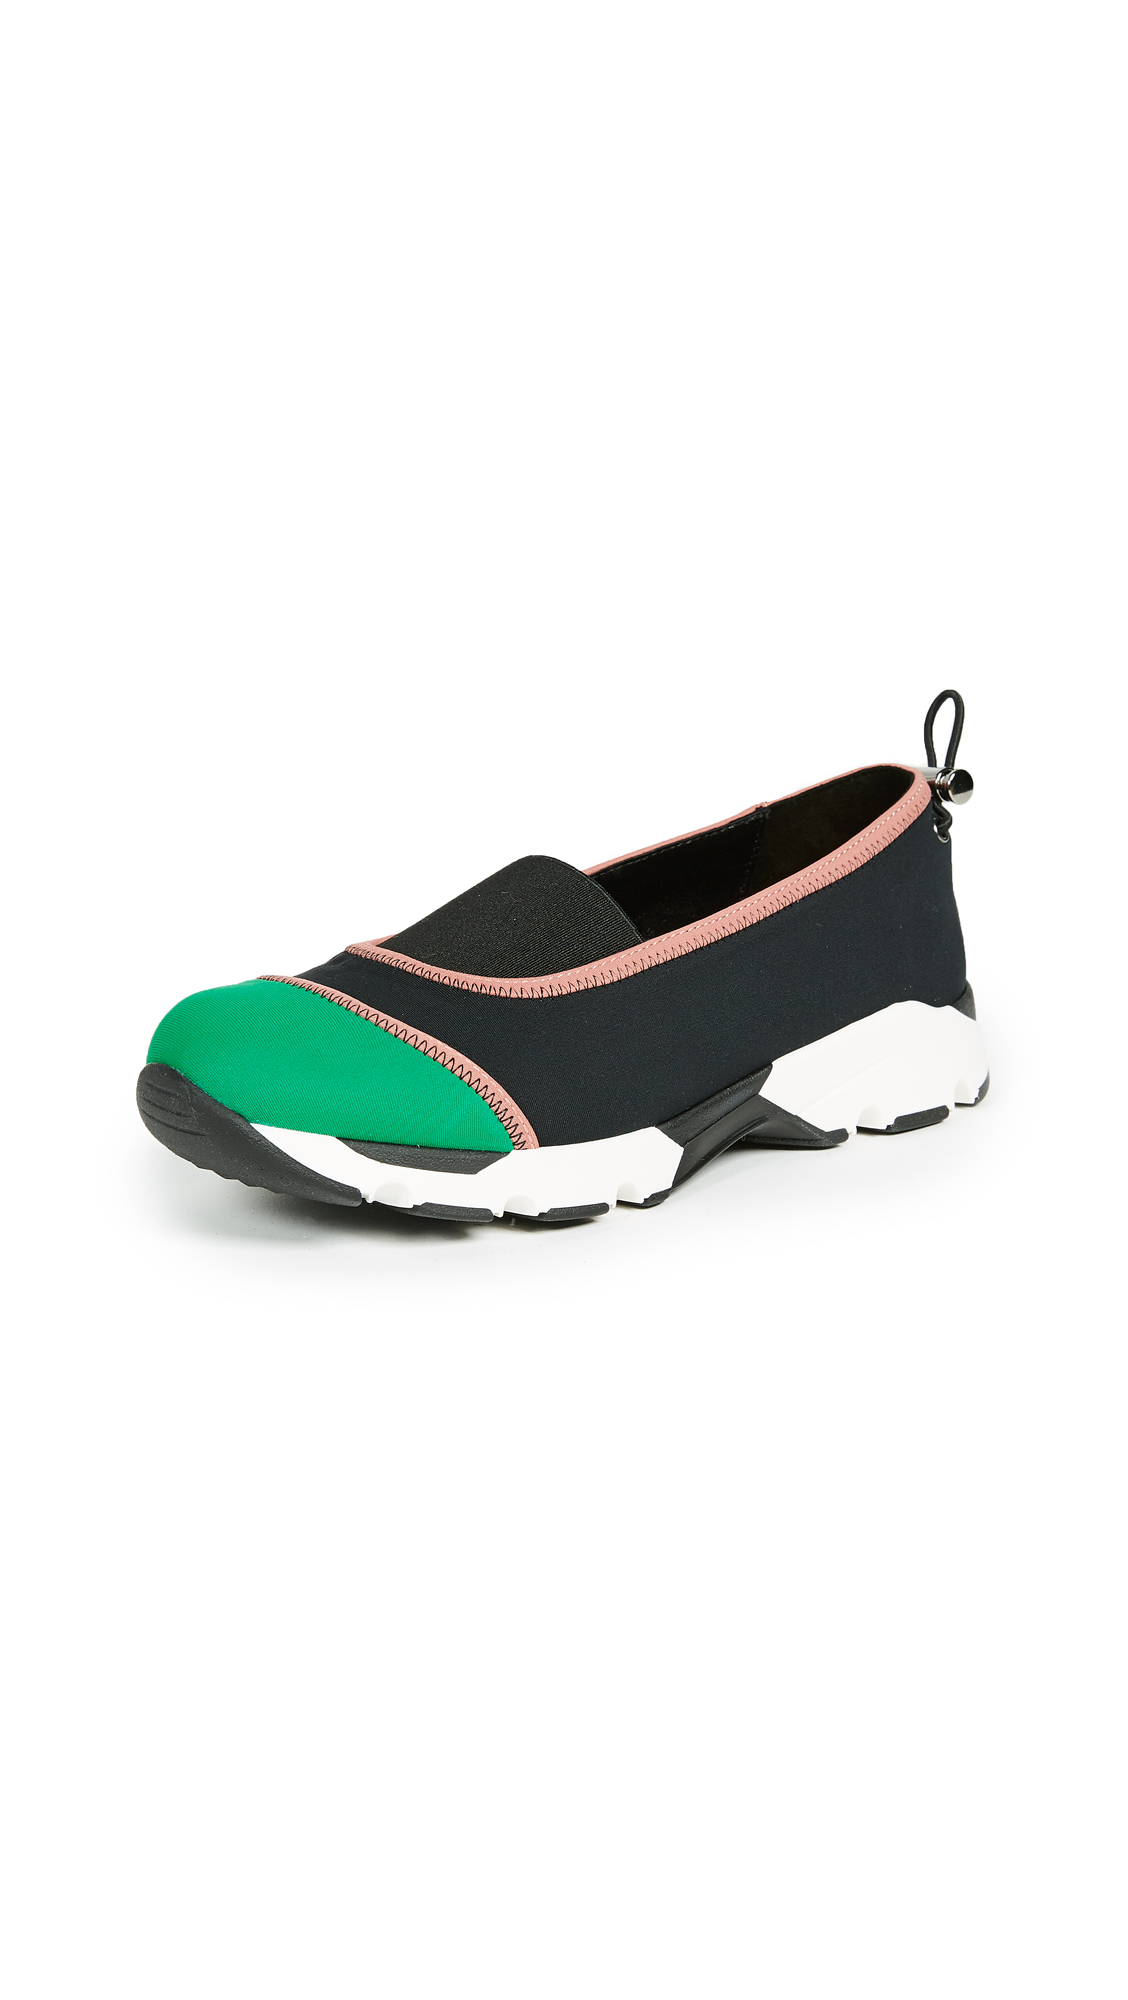 Marni Slip On Joggers - Black/Garden Green/Quartz